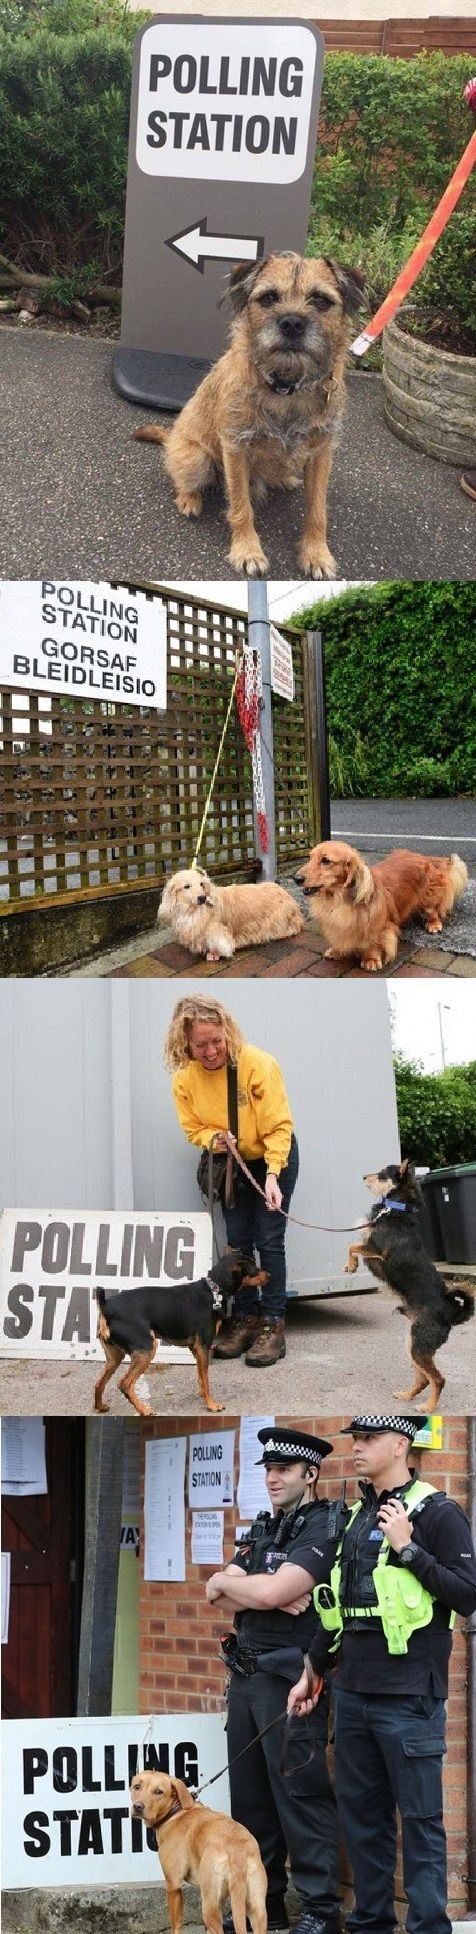 Dogs At Polling Stations Craze Takes New Turn As Horses, Rats And Cats Get In On The Act